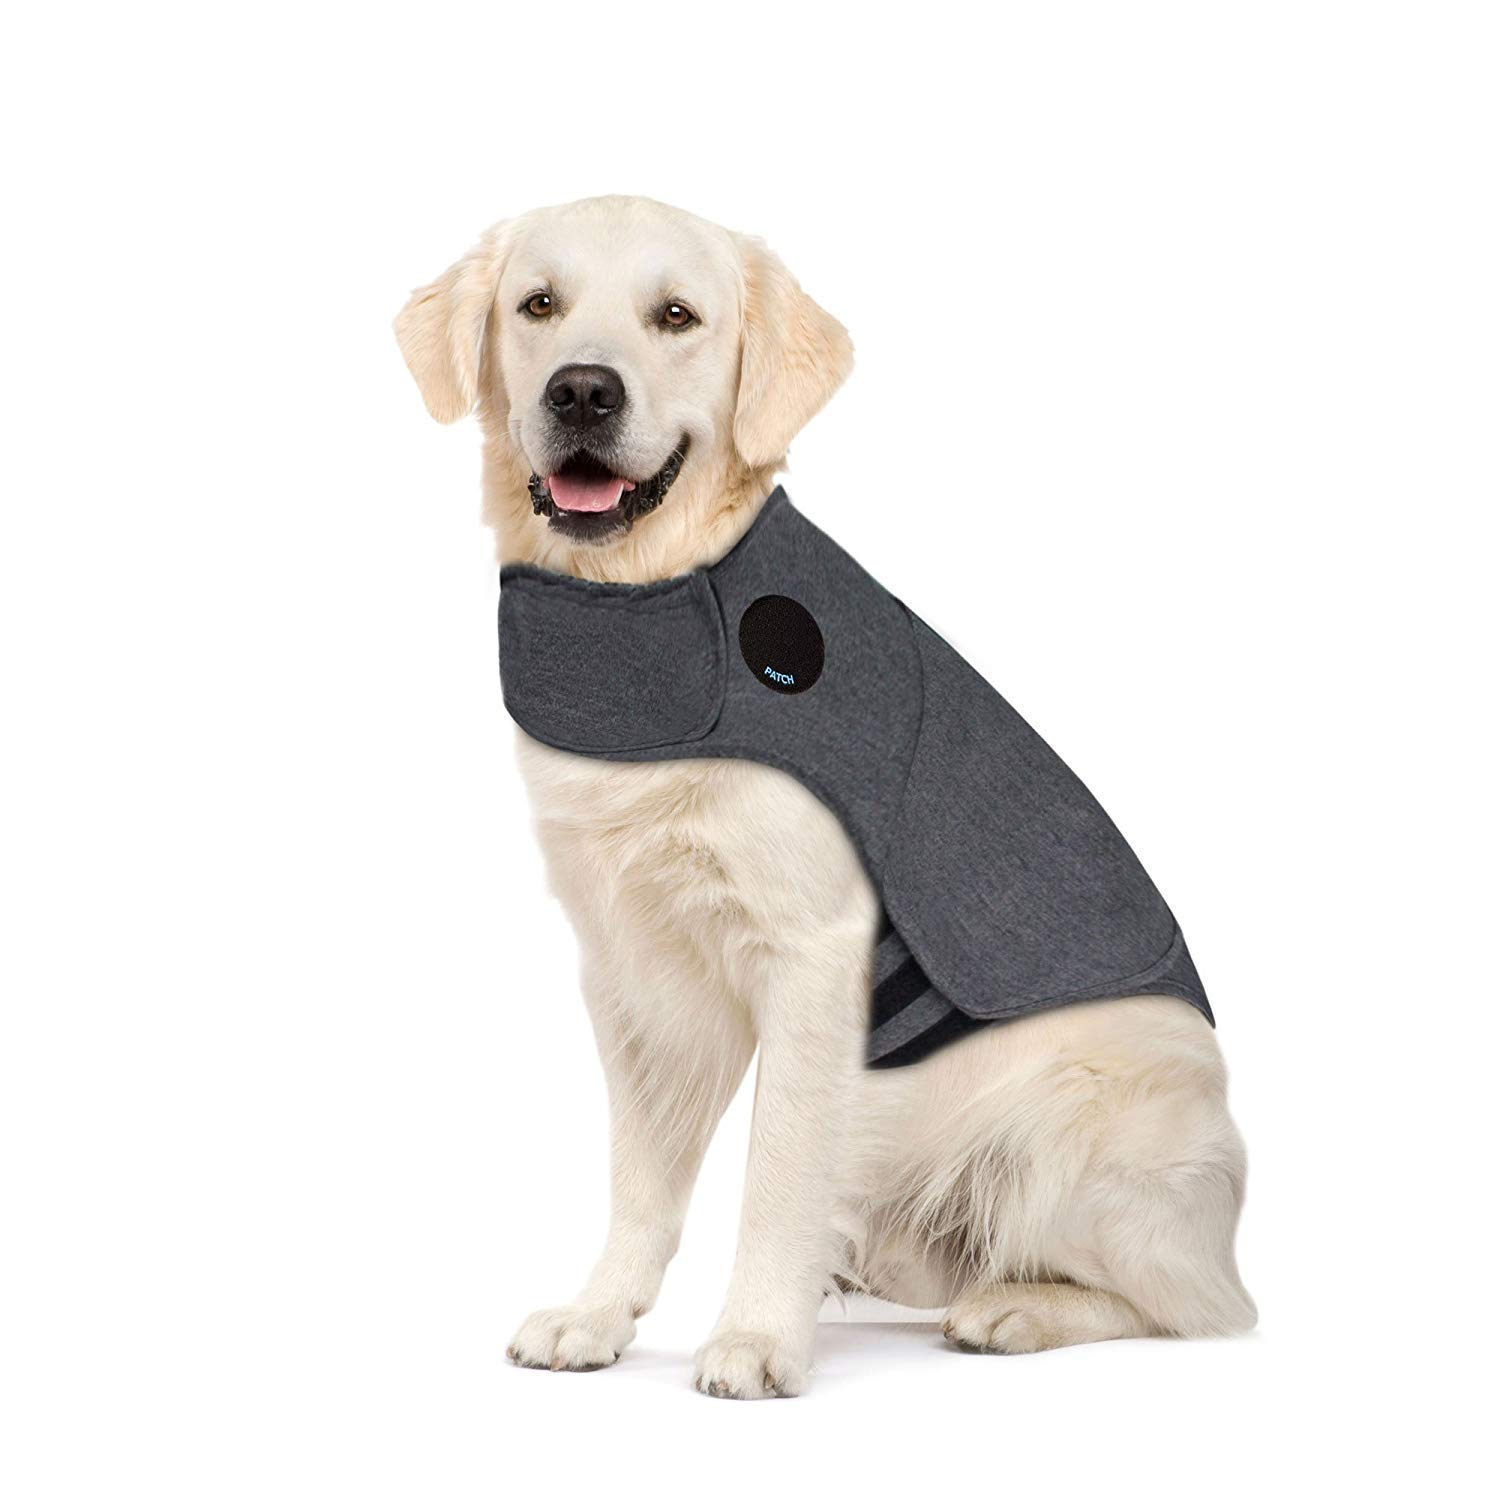 Thunder Dog Anxiety Jacket Anti-Anxiety Shirt Stress Relief Keep Calm Clothes, Heather Gray (XL) by Thunder